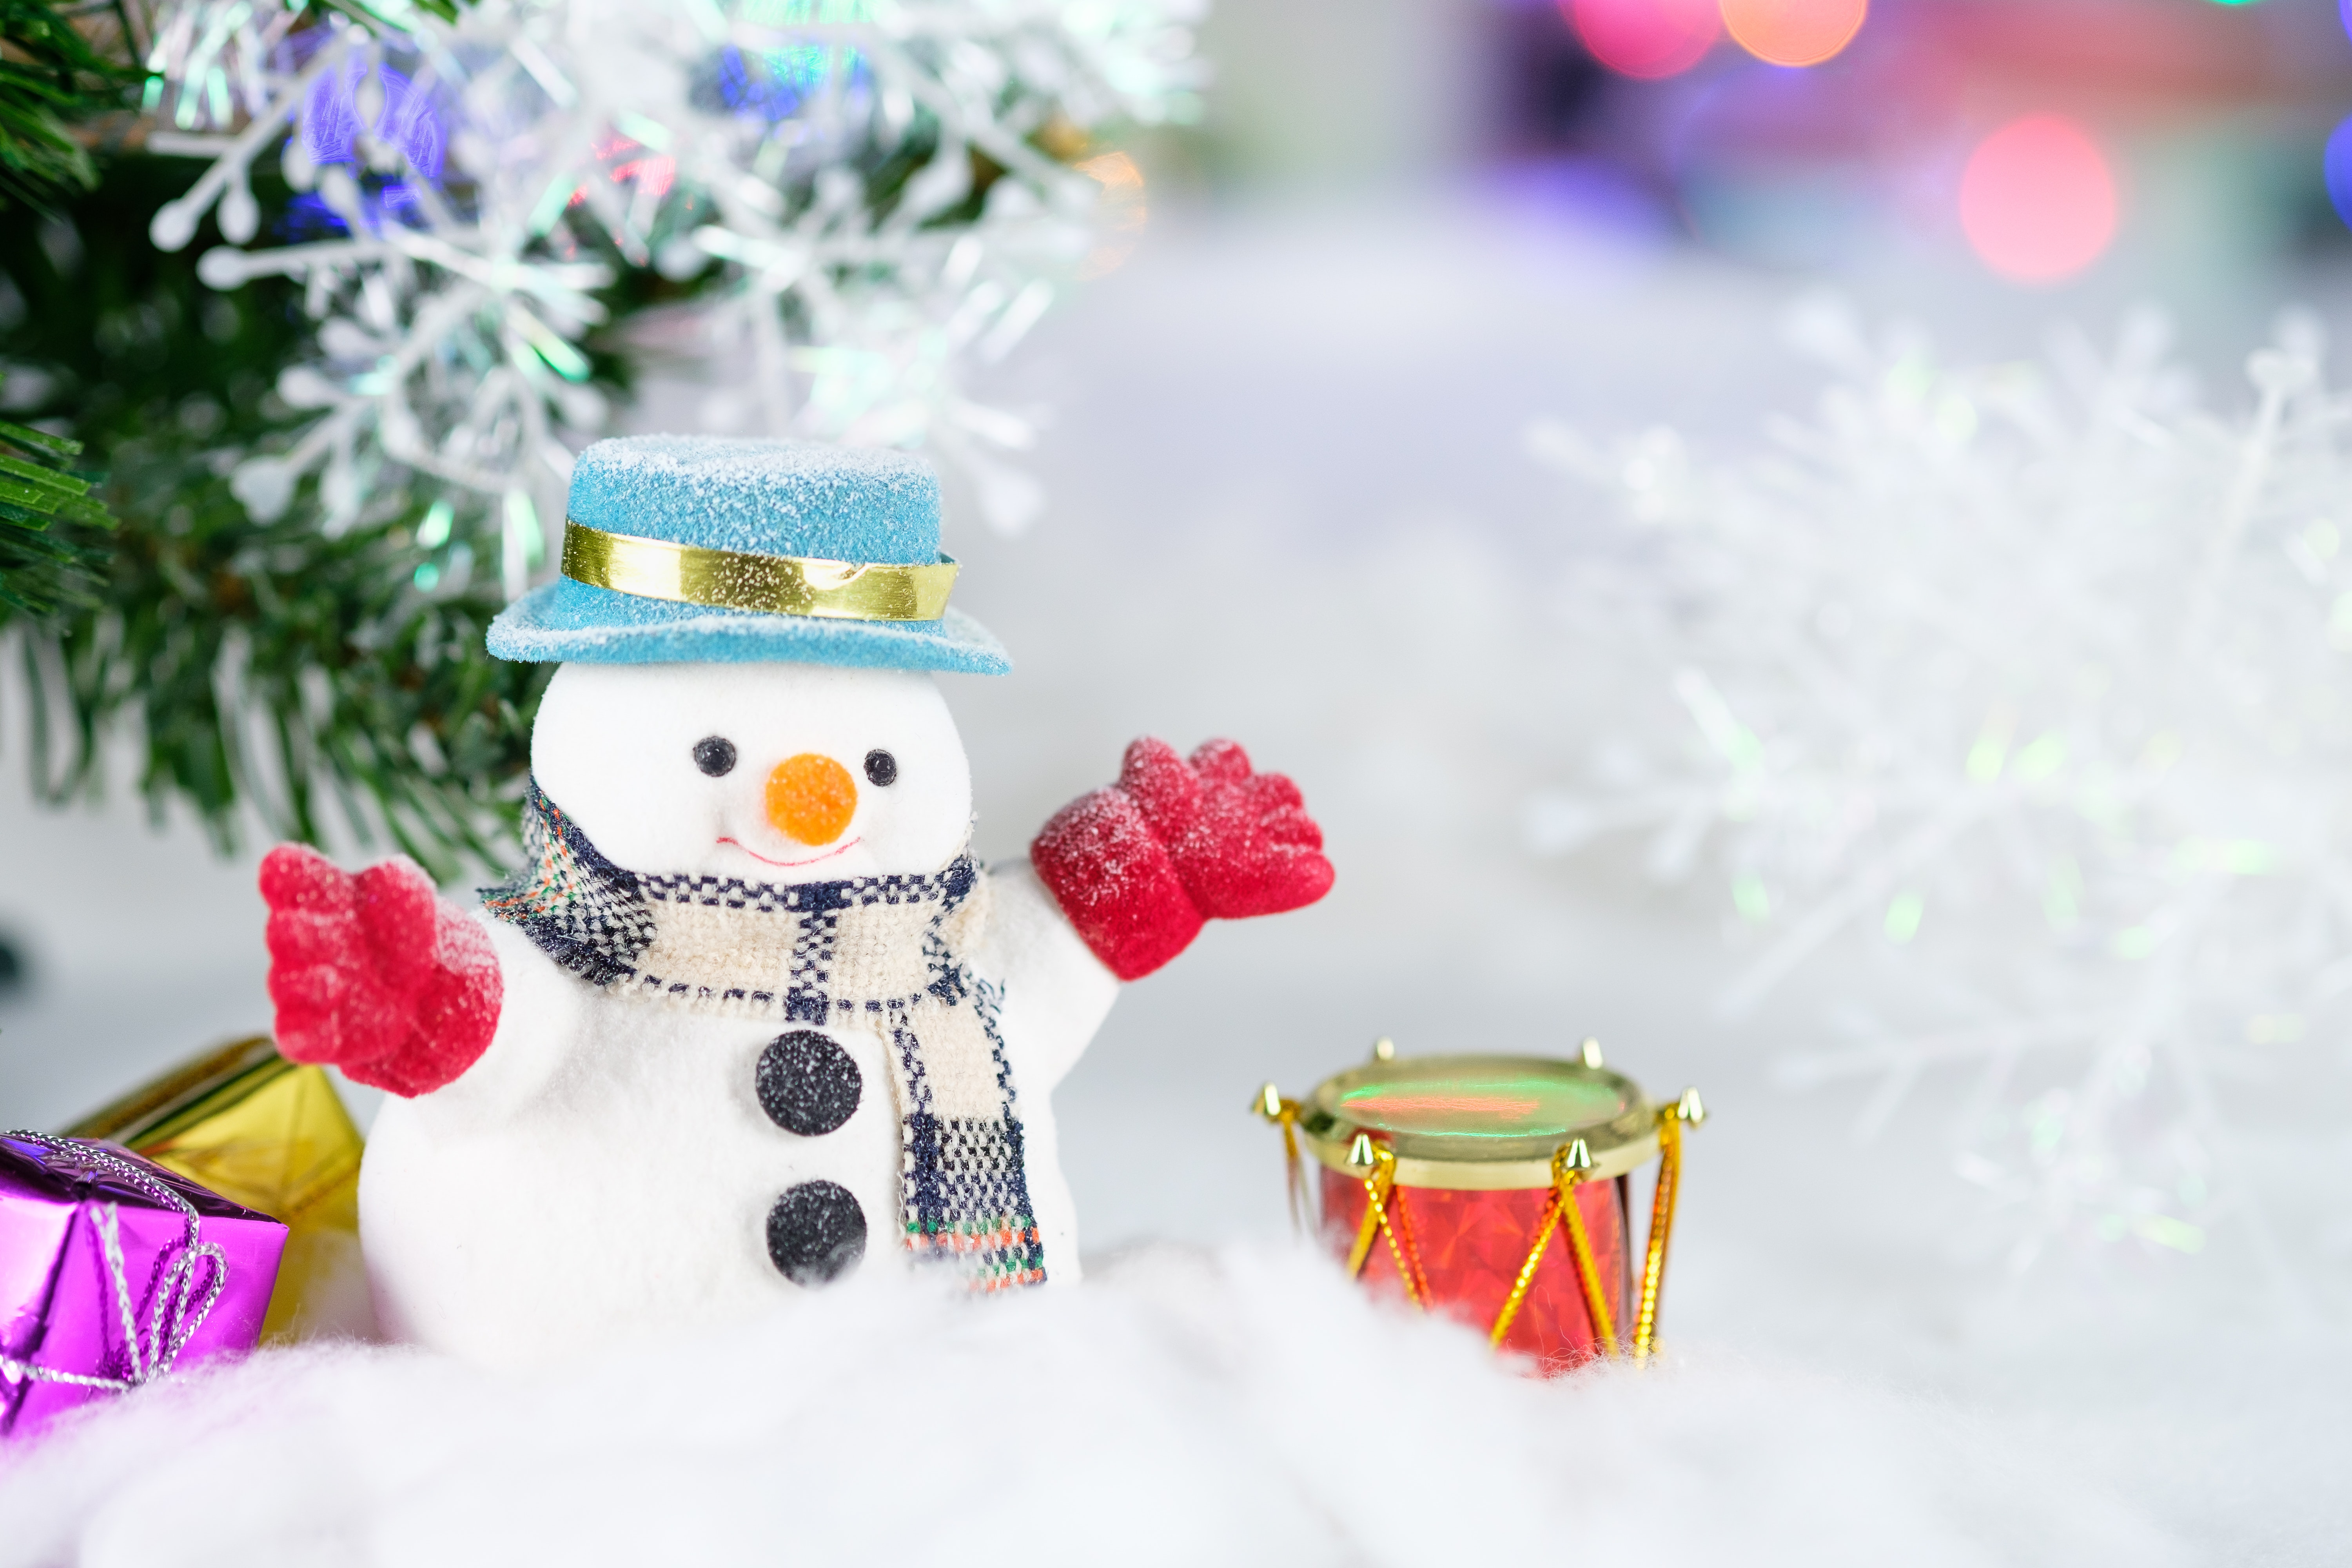 Christmas Drum Decor.Snowman And Drum Decor Free Stock Photo